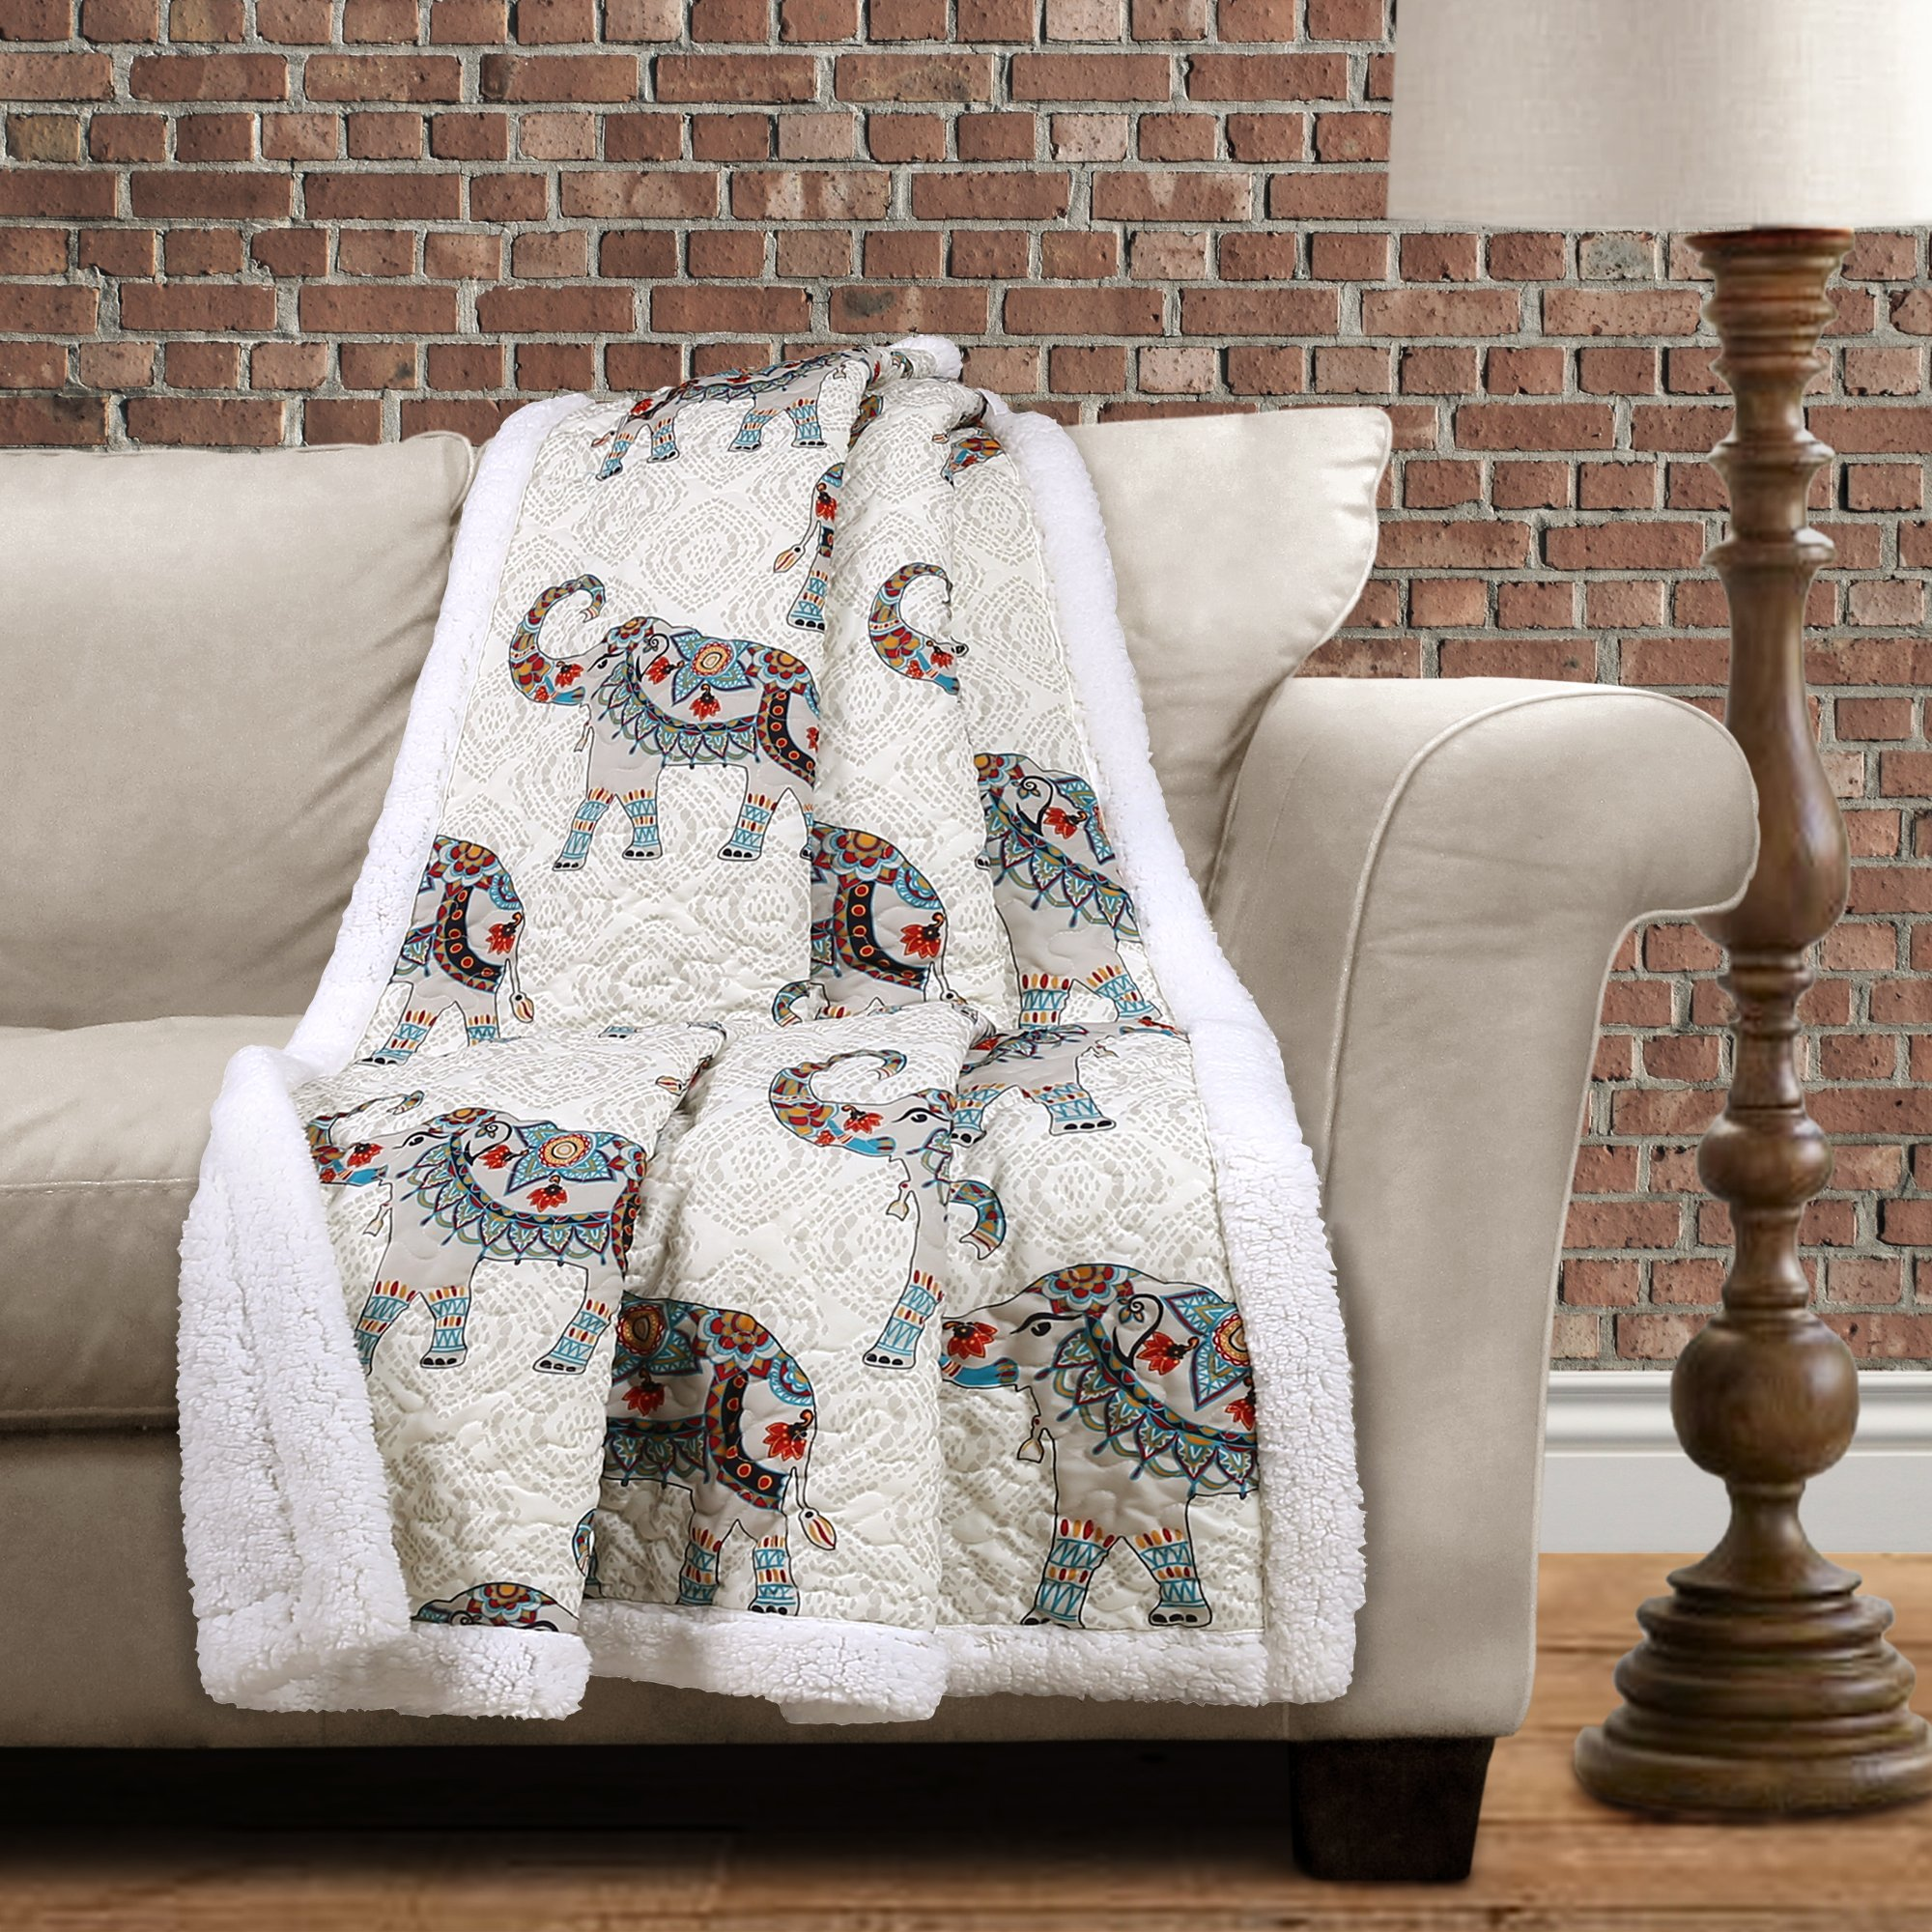 Lush Decor Hati Elephants Sherpa Throw, 60'' x 50'', Navy/Turquoise